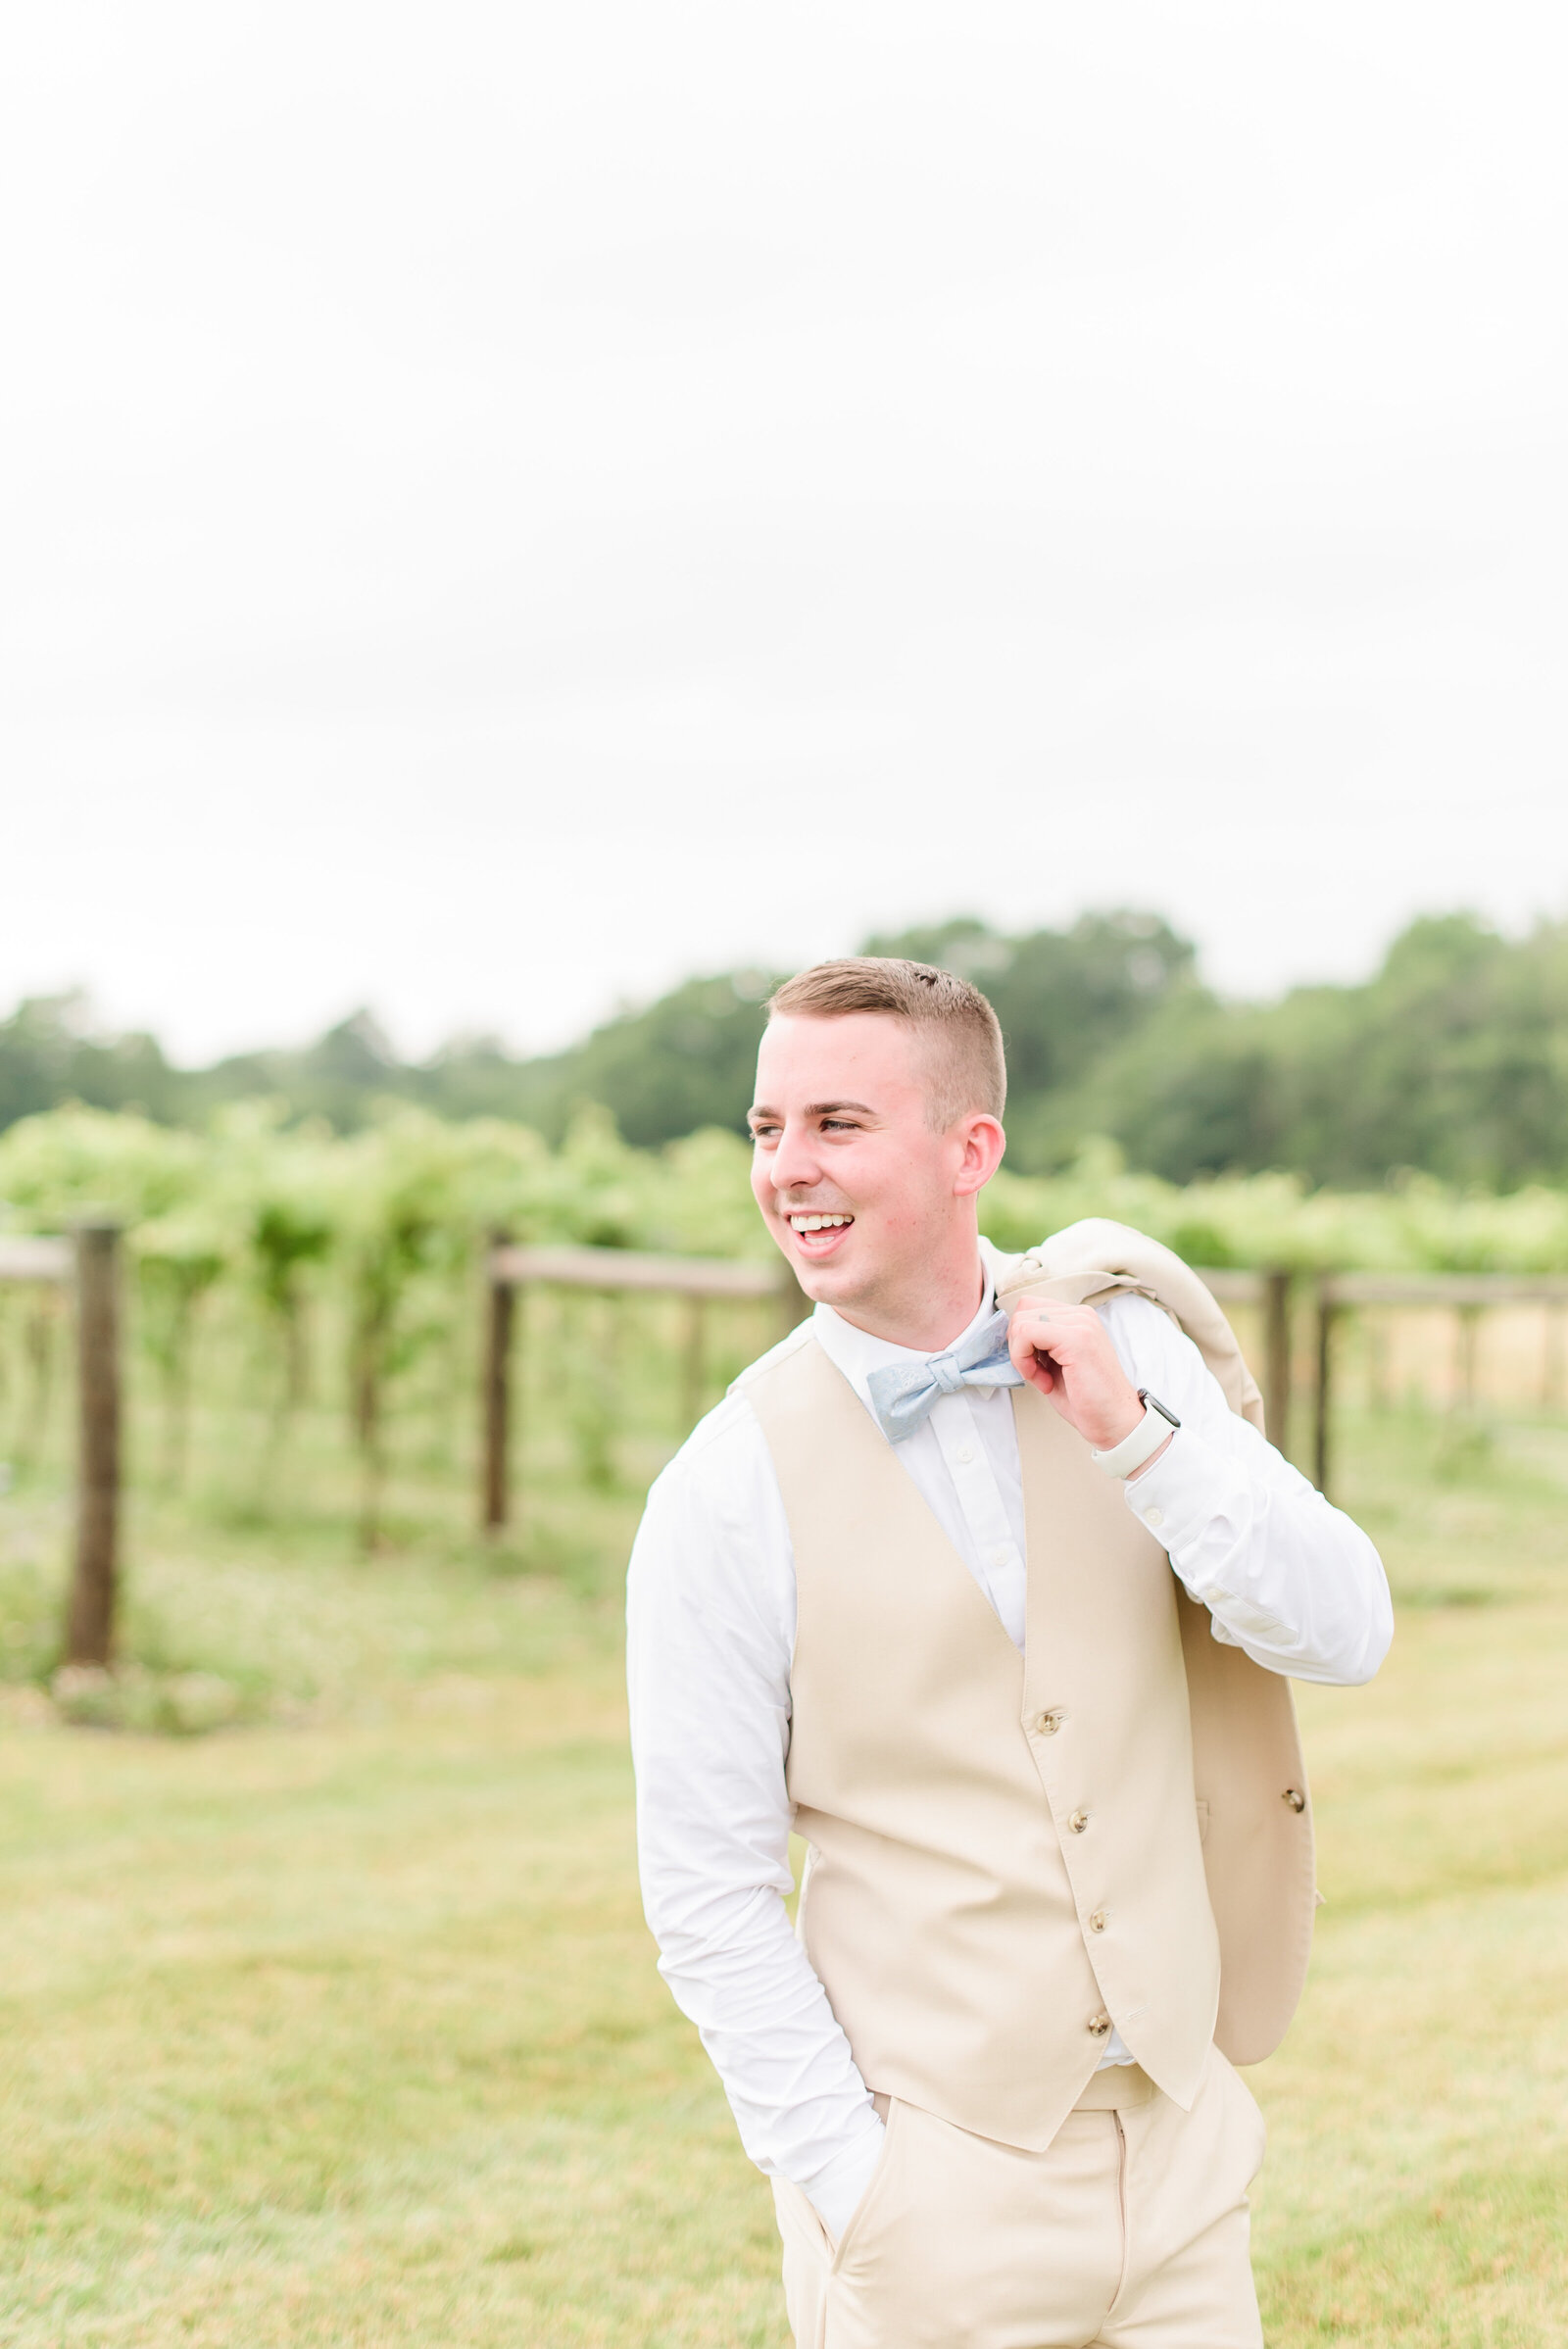 Groom Portraits at The Sycamore at Mallow Run